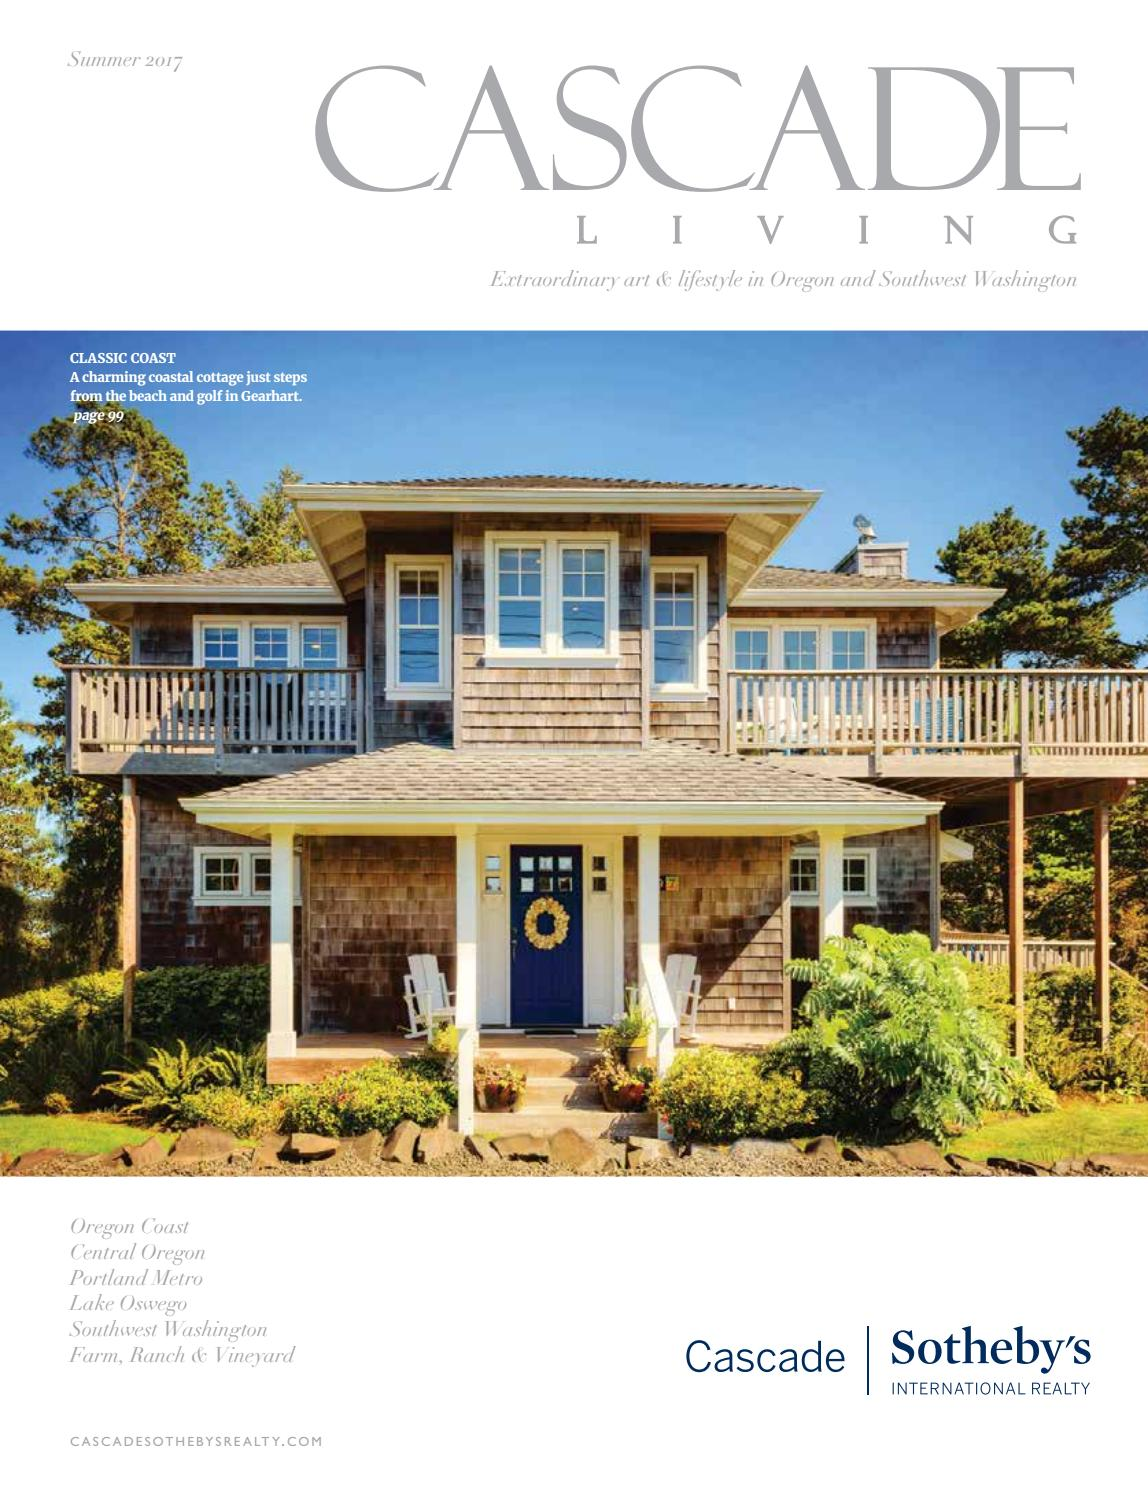 Downtown Classic Coastal Home: Summer 2017 By Cascade Sotheby's